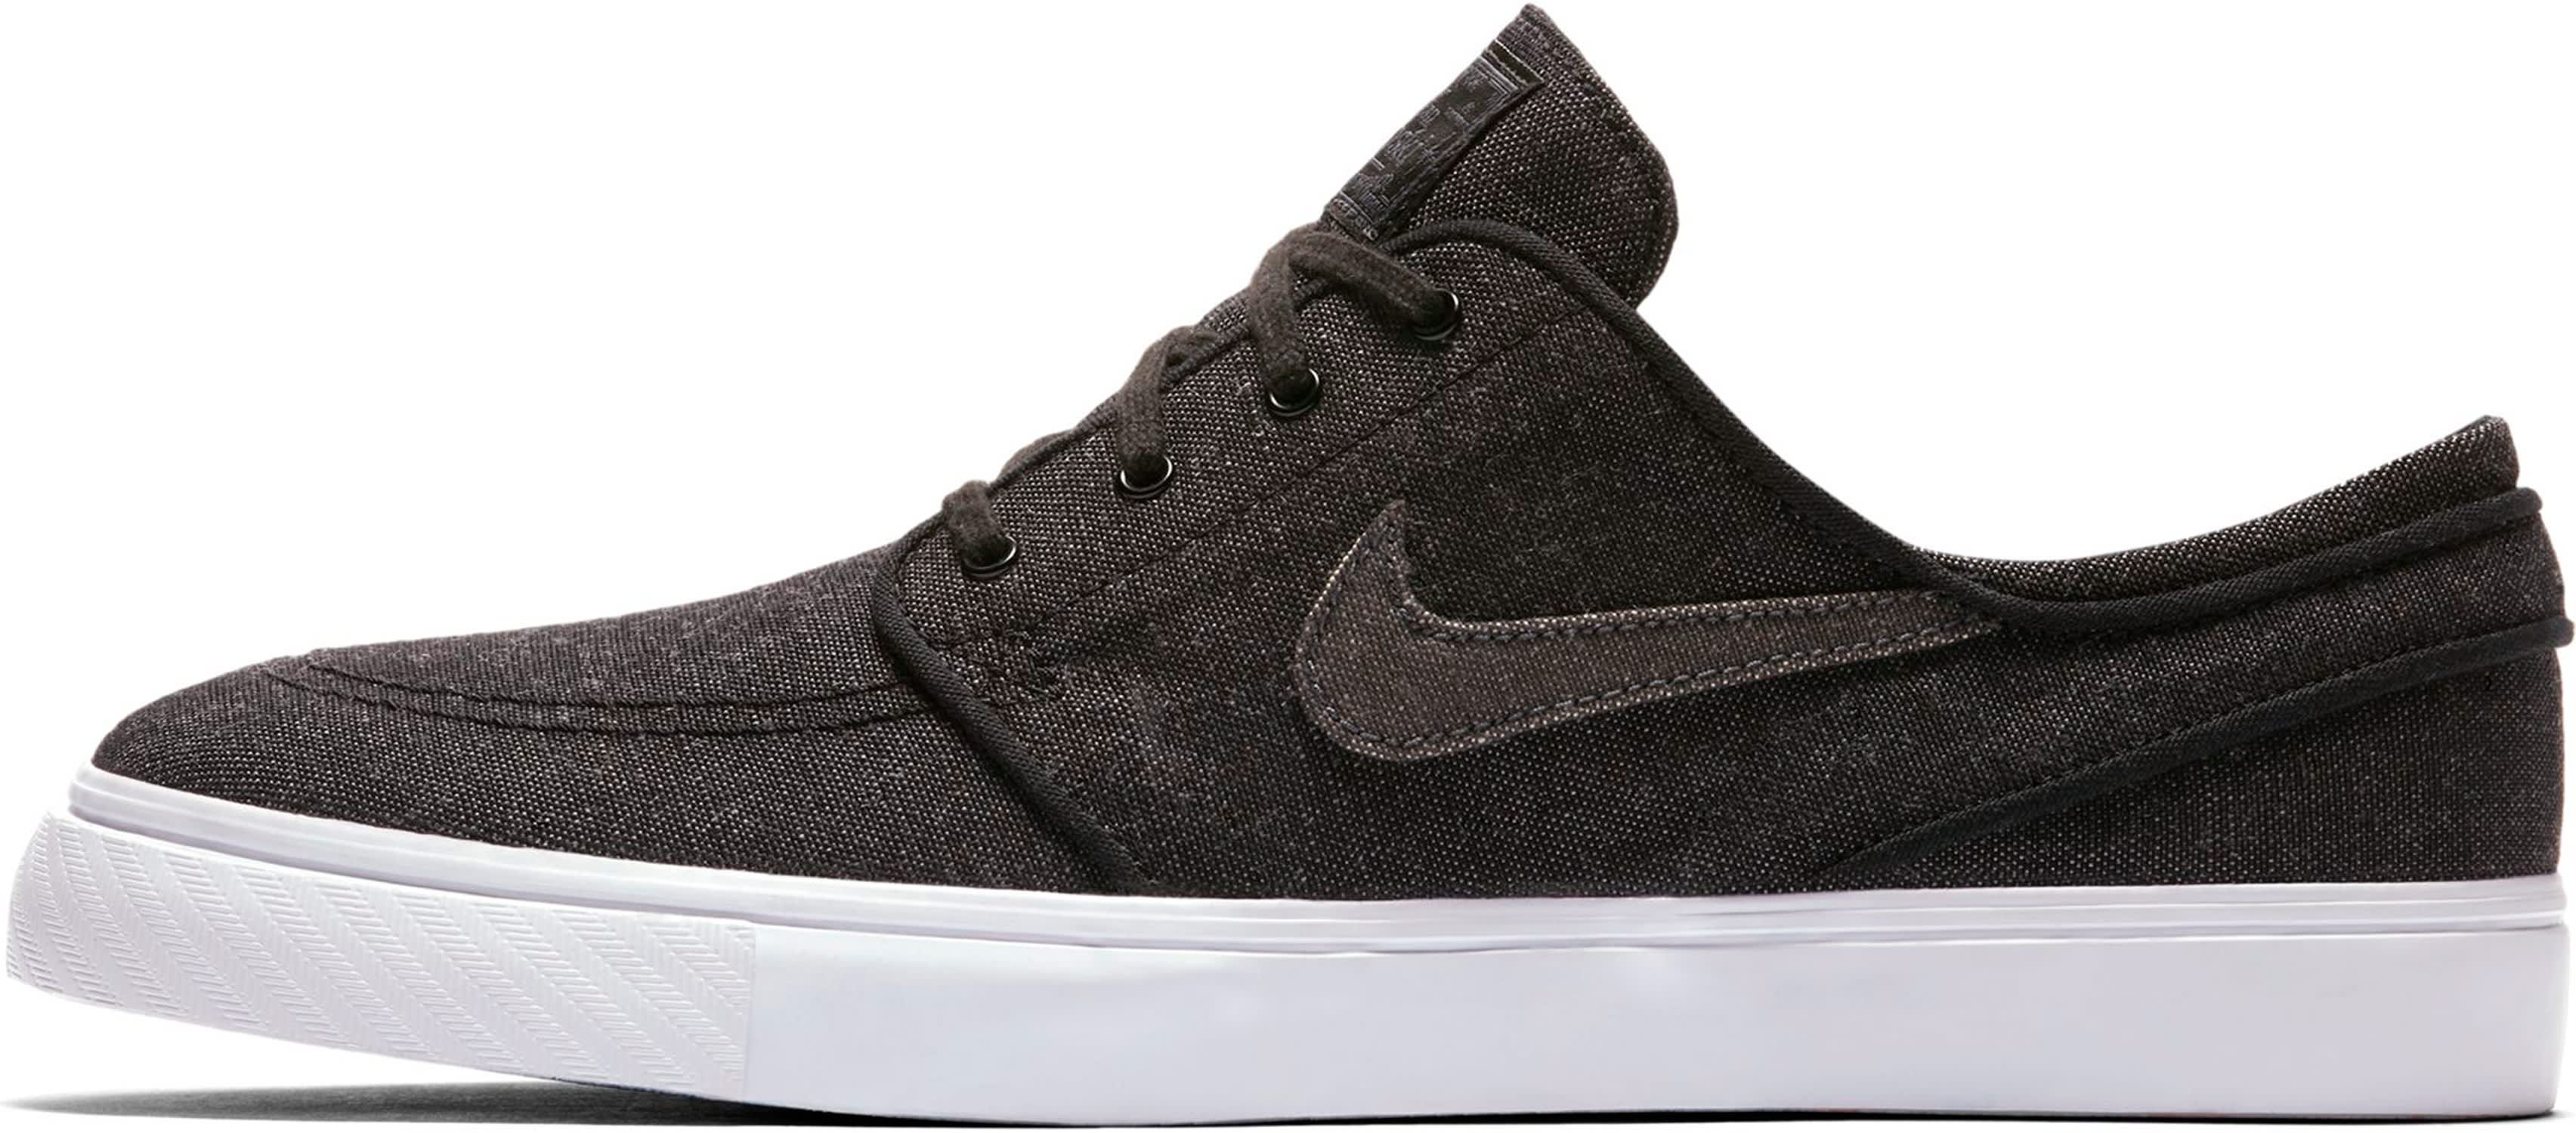 new styles bcea8 99bca Nike SB Zoom Stefan Janoski Canvas Deconstructed Skate Shoes - thumbnail 2